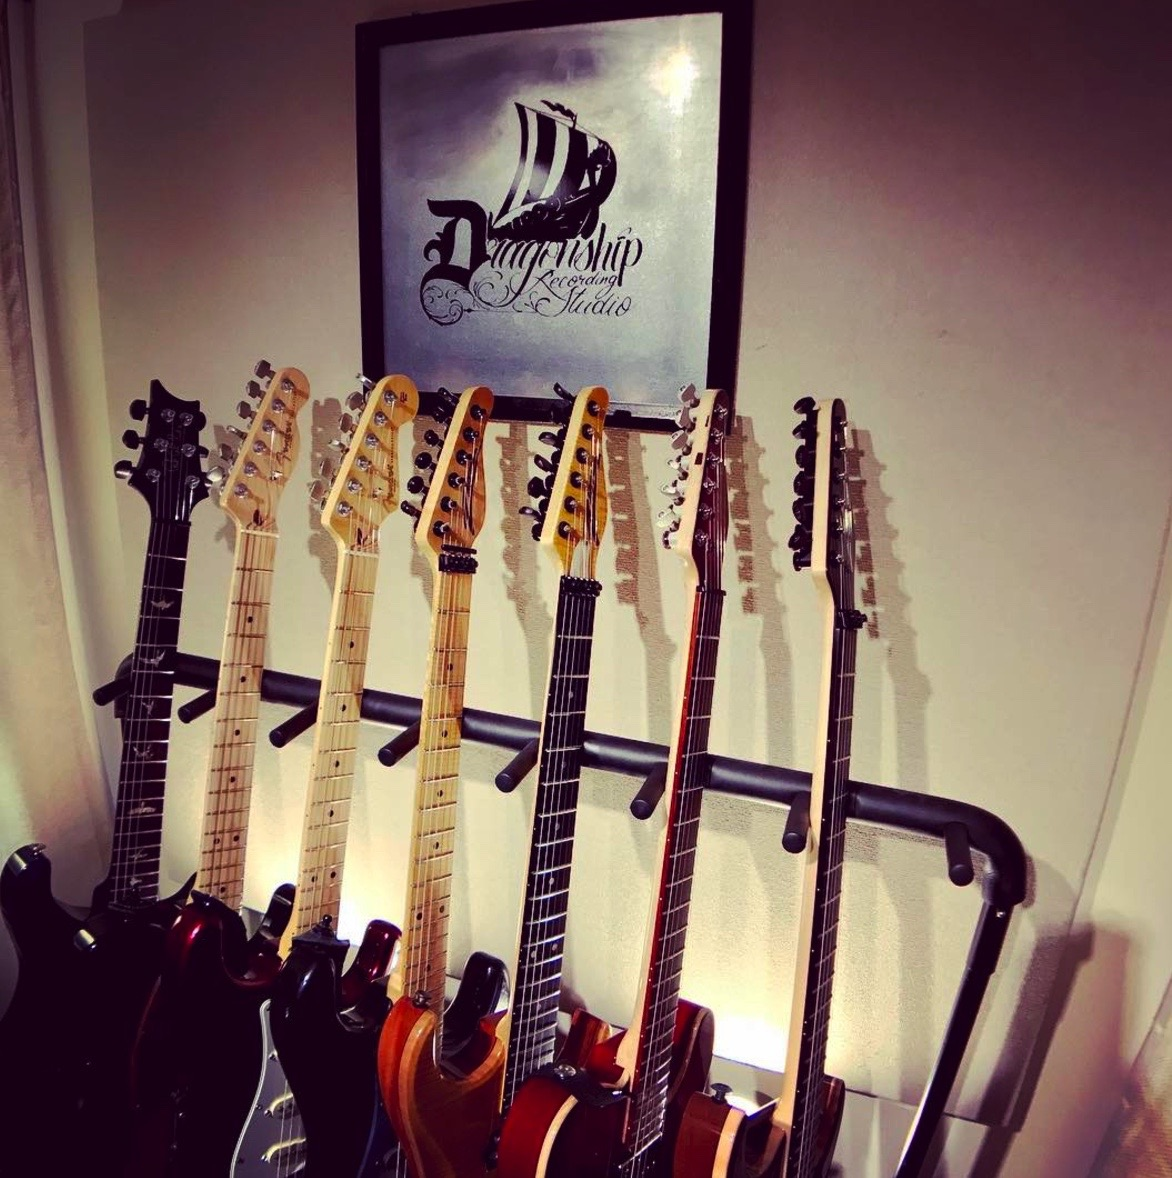 Electric Guitars & Basses - D'Angelico EX-DCFender American Standard TelecasterFender American Standard StratocasterGibson SG Dot (1999)Gibson Les Paul Standard (2004)Gibson Les Paul Custom '57 R7 Reissue (2001)Gibson Les Paul 50s Tribute (2011)Gibson ES-335 Custom '62 Reissue (2015)Paul Reed Smith McCarty HB II (1999)Zion Radicaster (1991)Zion Classic (2006)Zion Classic 24 (2015)Zion Ninety Thin-Line TelecasterFender American Standard Jazz BassIbanez Premium 5-String Bass